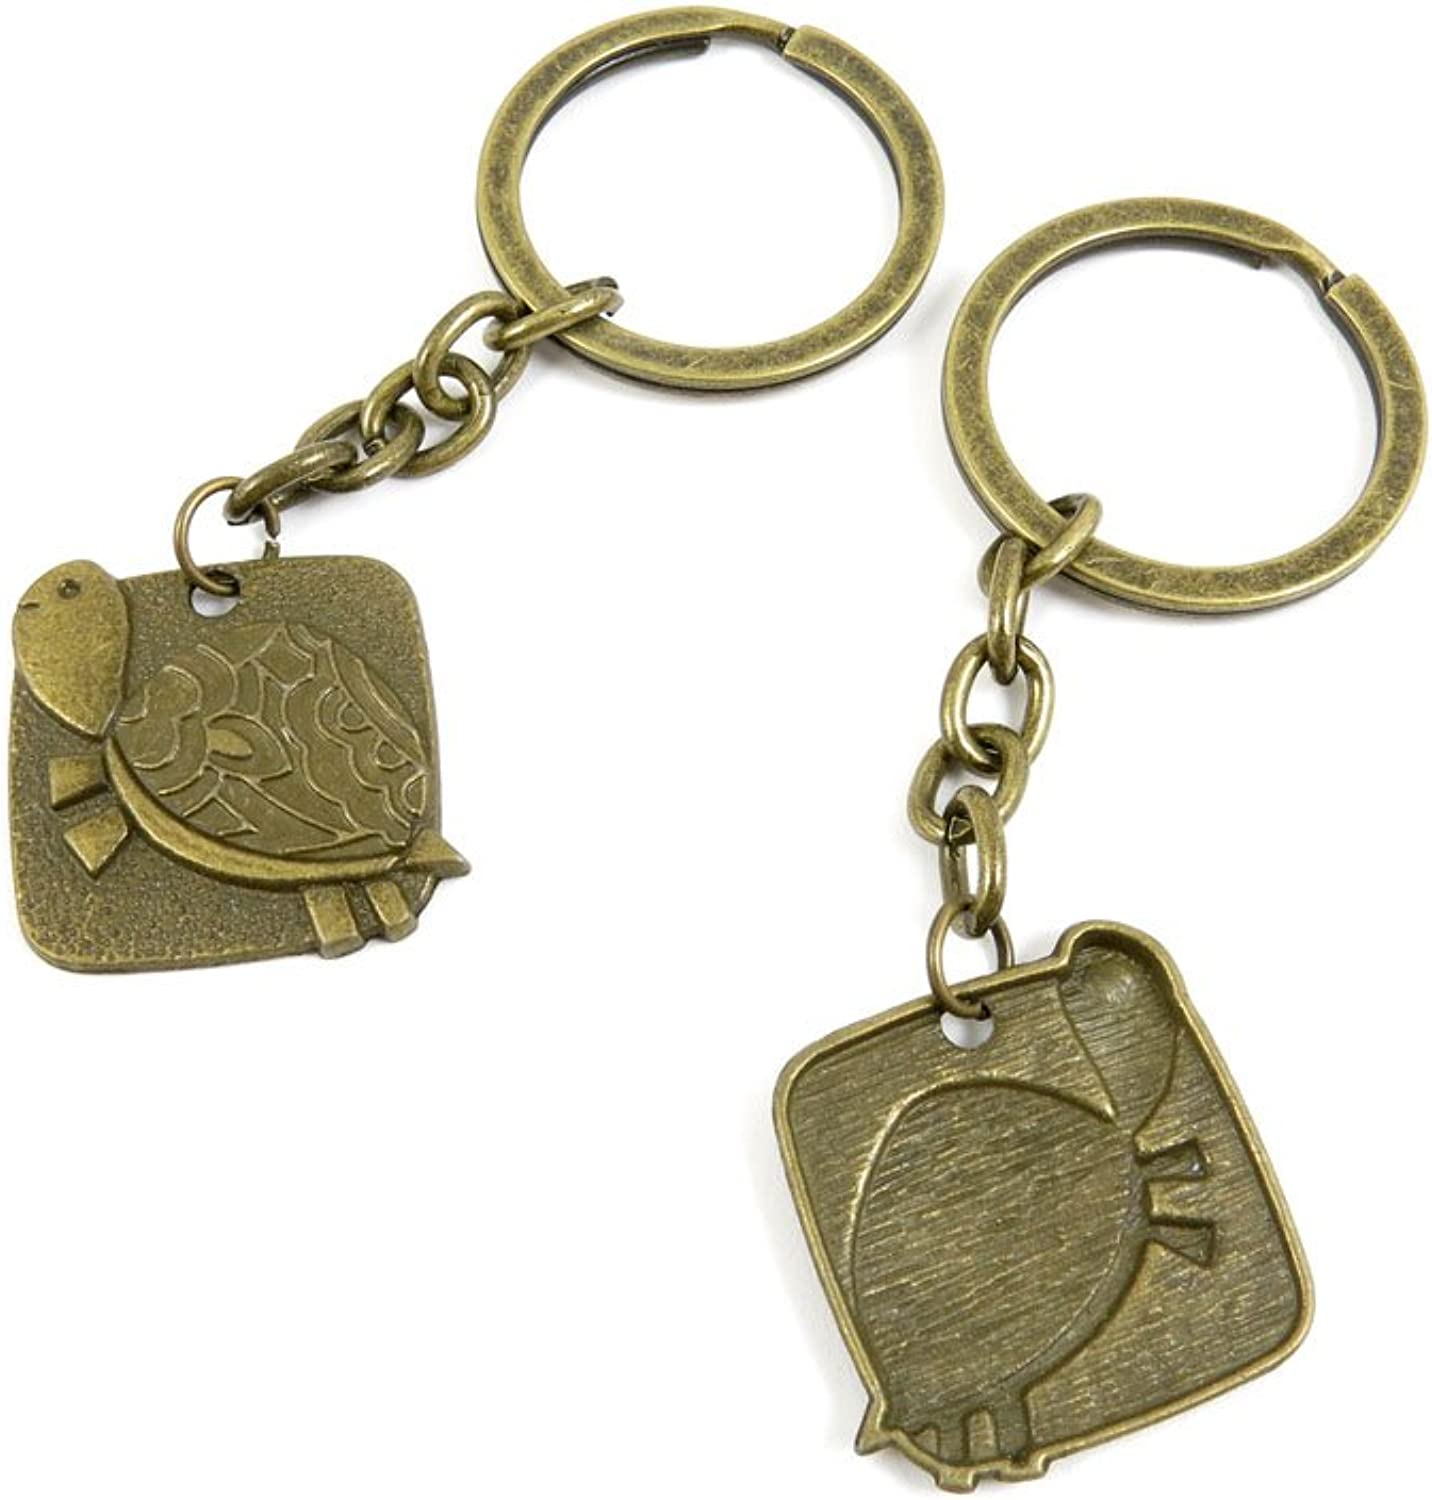 150 Pieces Fashion Jewelry Keyring Keychain Door Car Key Tag Ring Chain Supplier Supply Wholesale Bulk Lots B7IZ6 Turtle Tortoise Sign Tag